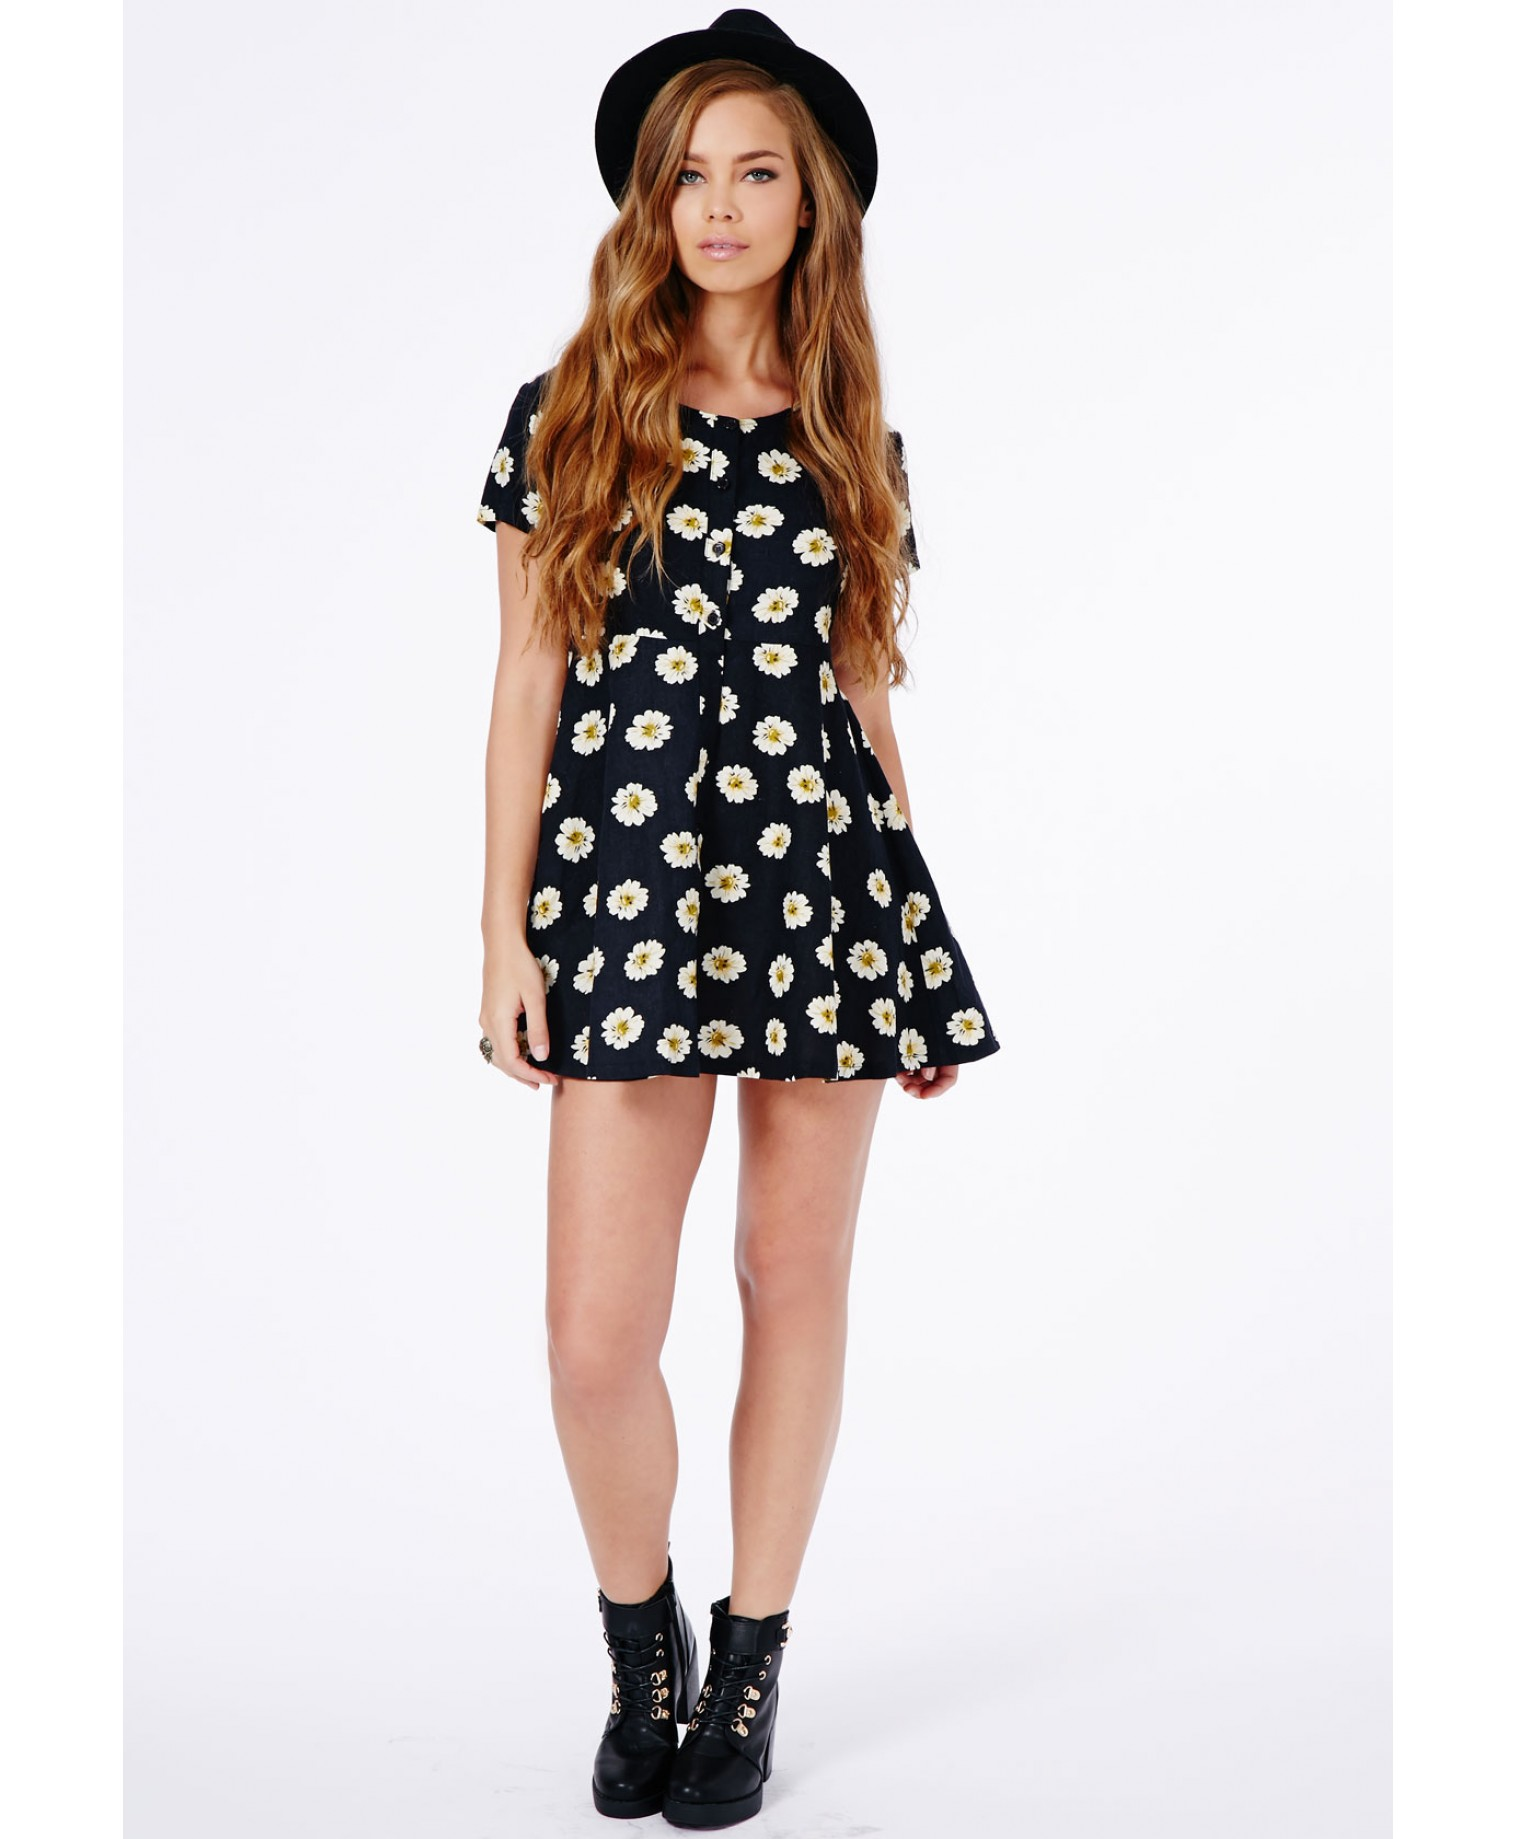 Demi daisy skater shirt dress